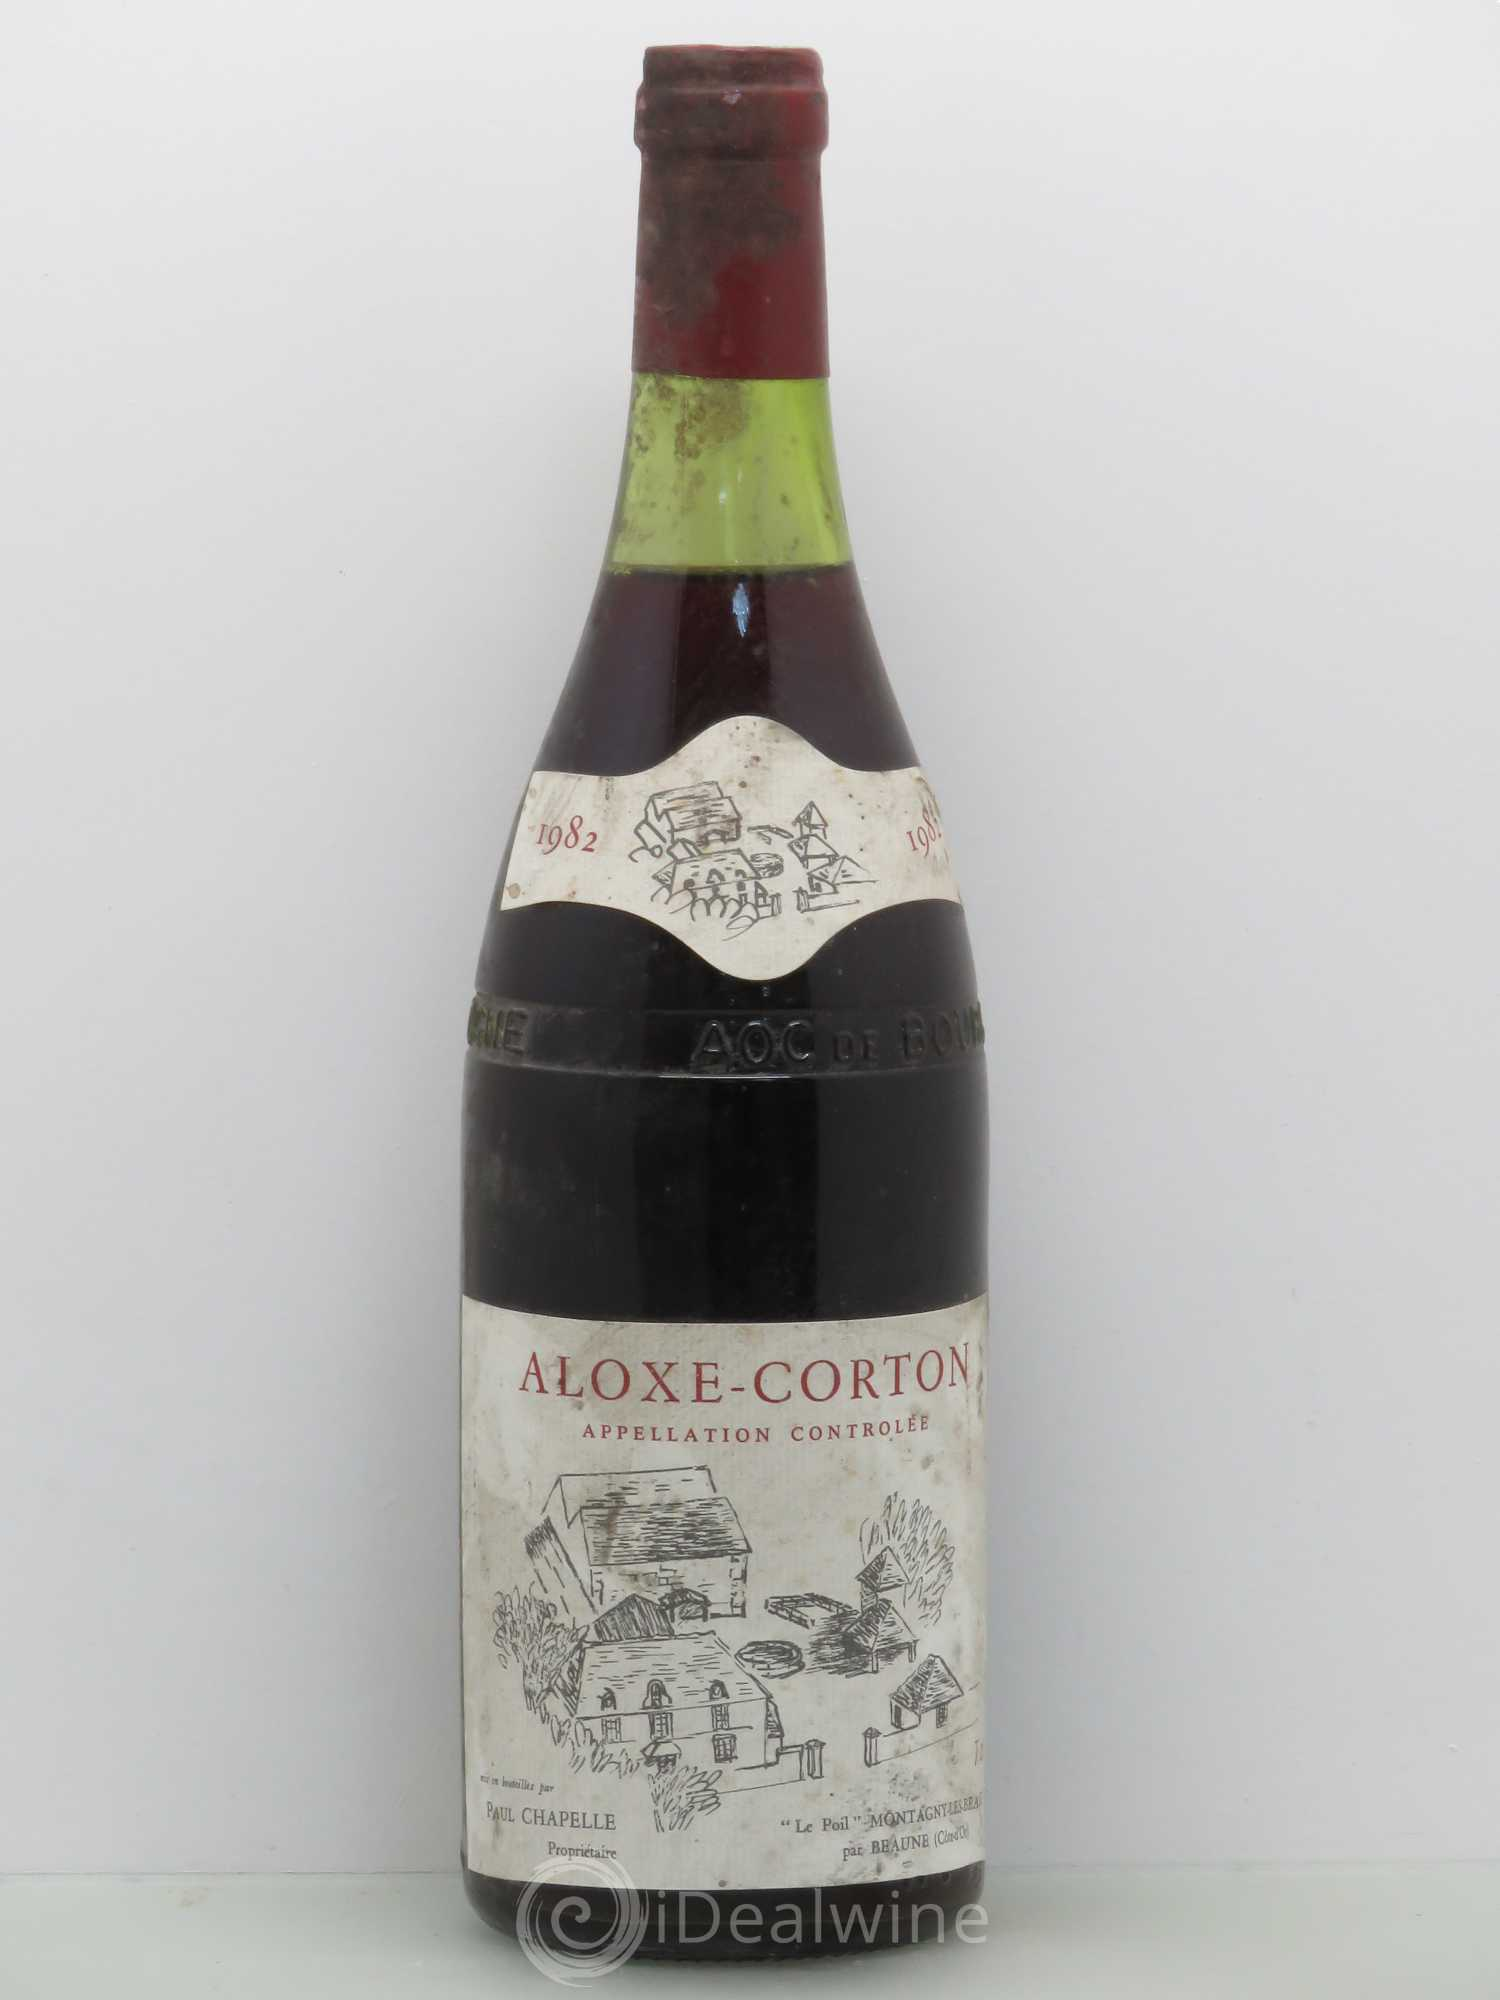 Aloxe-Corton Paul Chapelle 1982 - Lot de 1 Bouteille